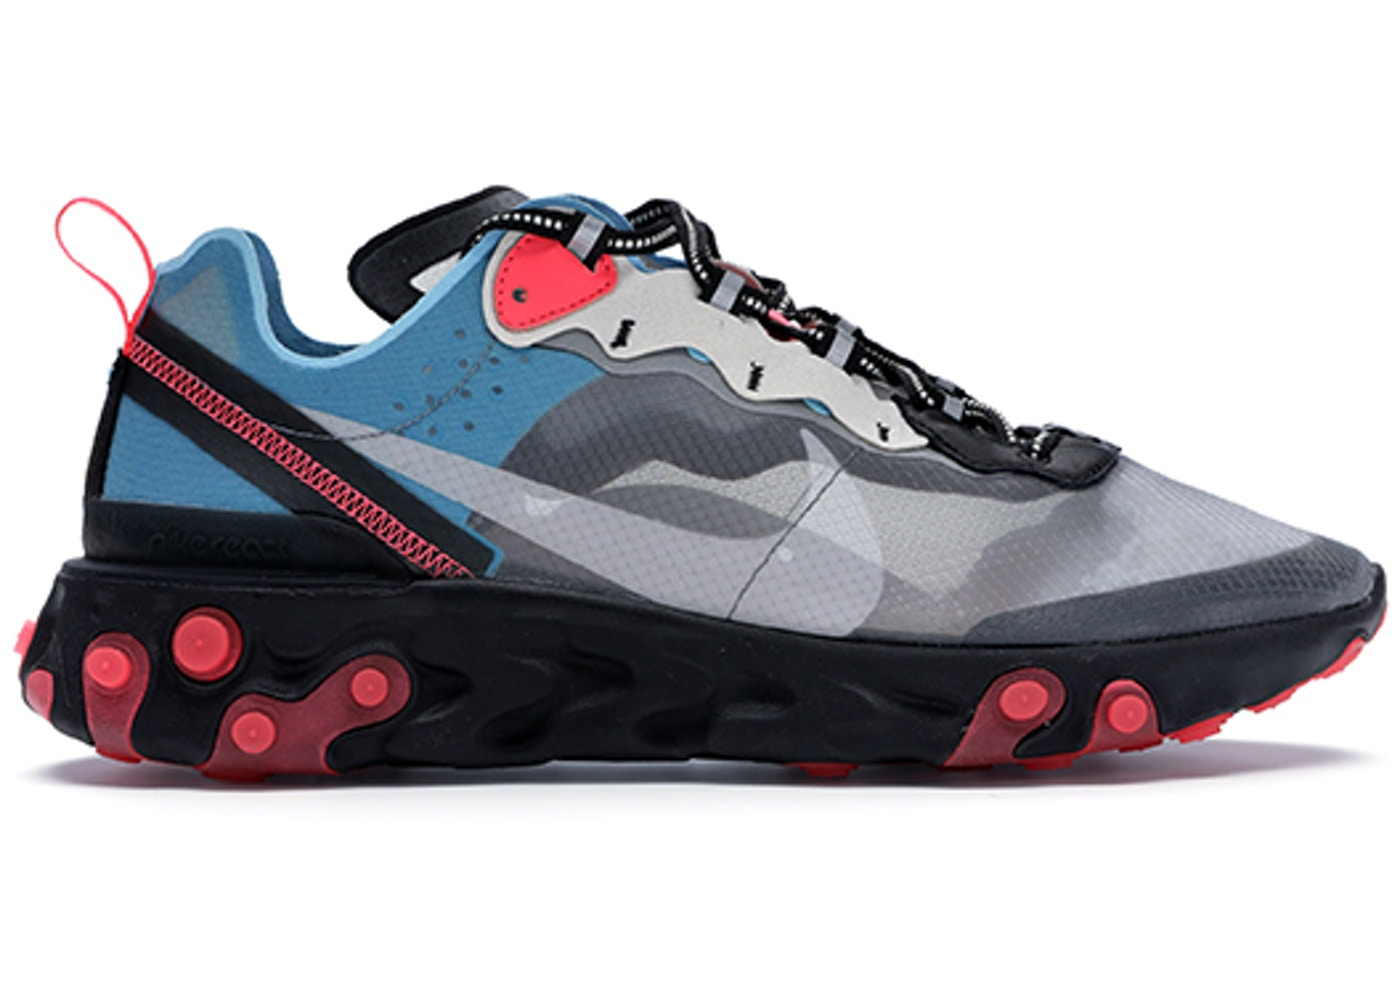 4eb4860c2198 Nike React Element 87 Blue Chill Solar Red - AQ1090-006